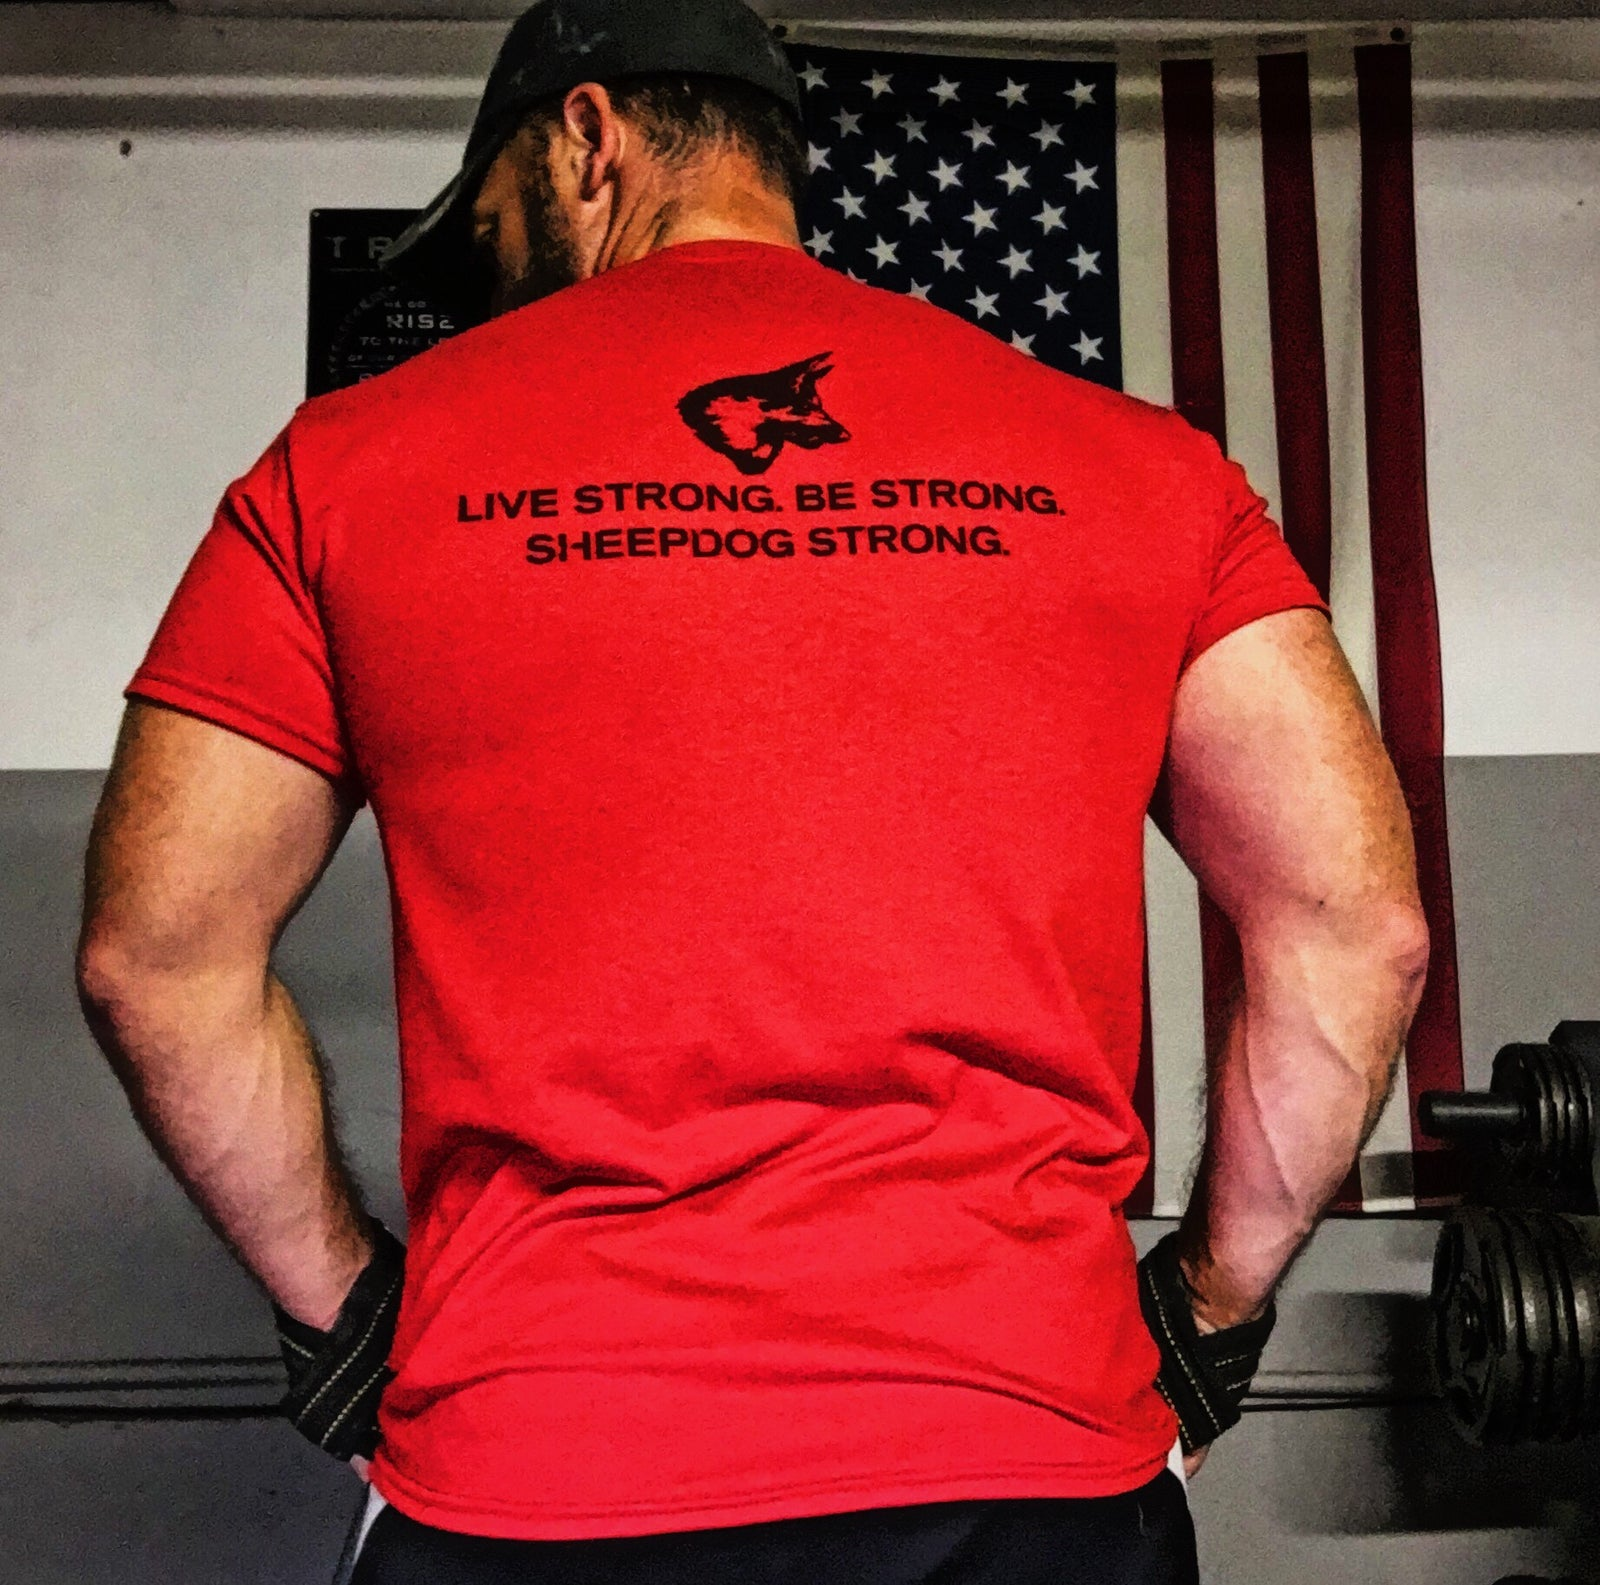 Live Strong, Be Strong, Sheepdog Strong Red T-Shirt | Badass Military Shirt